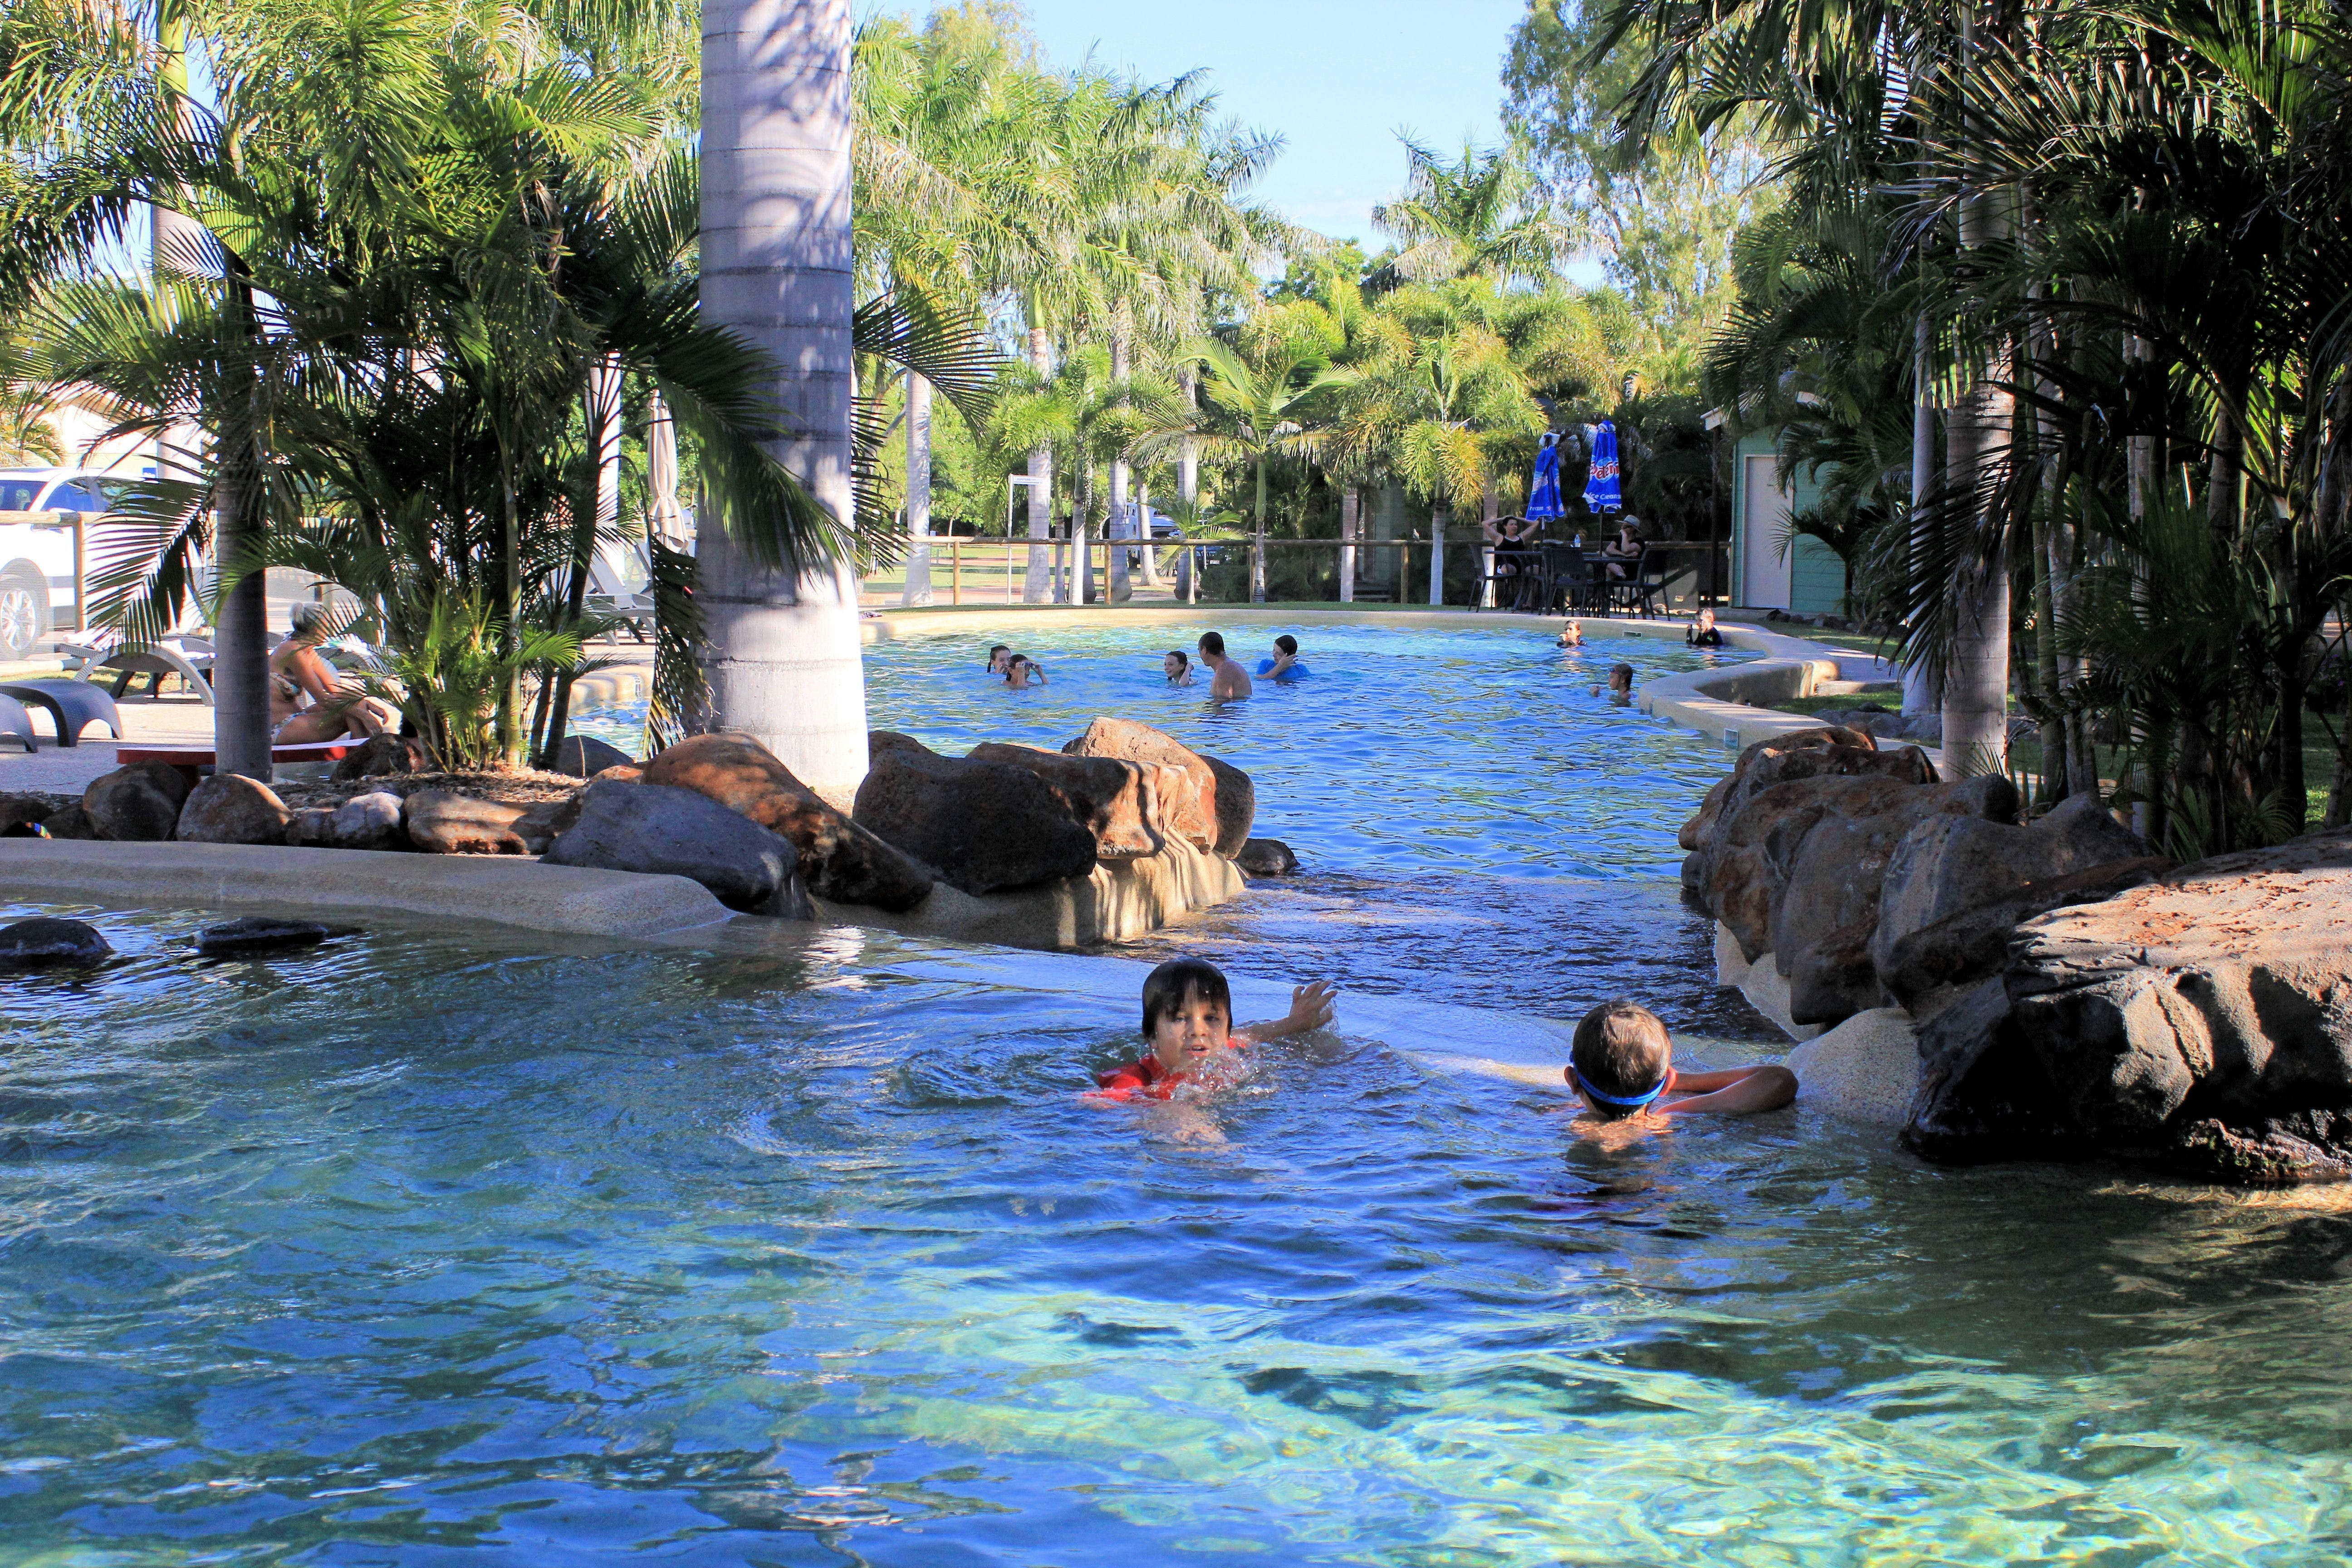 Big4 Aussie Outback Oasis Holiday Park - Nambucca Heads Accommodation